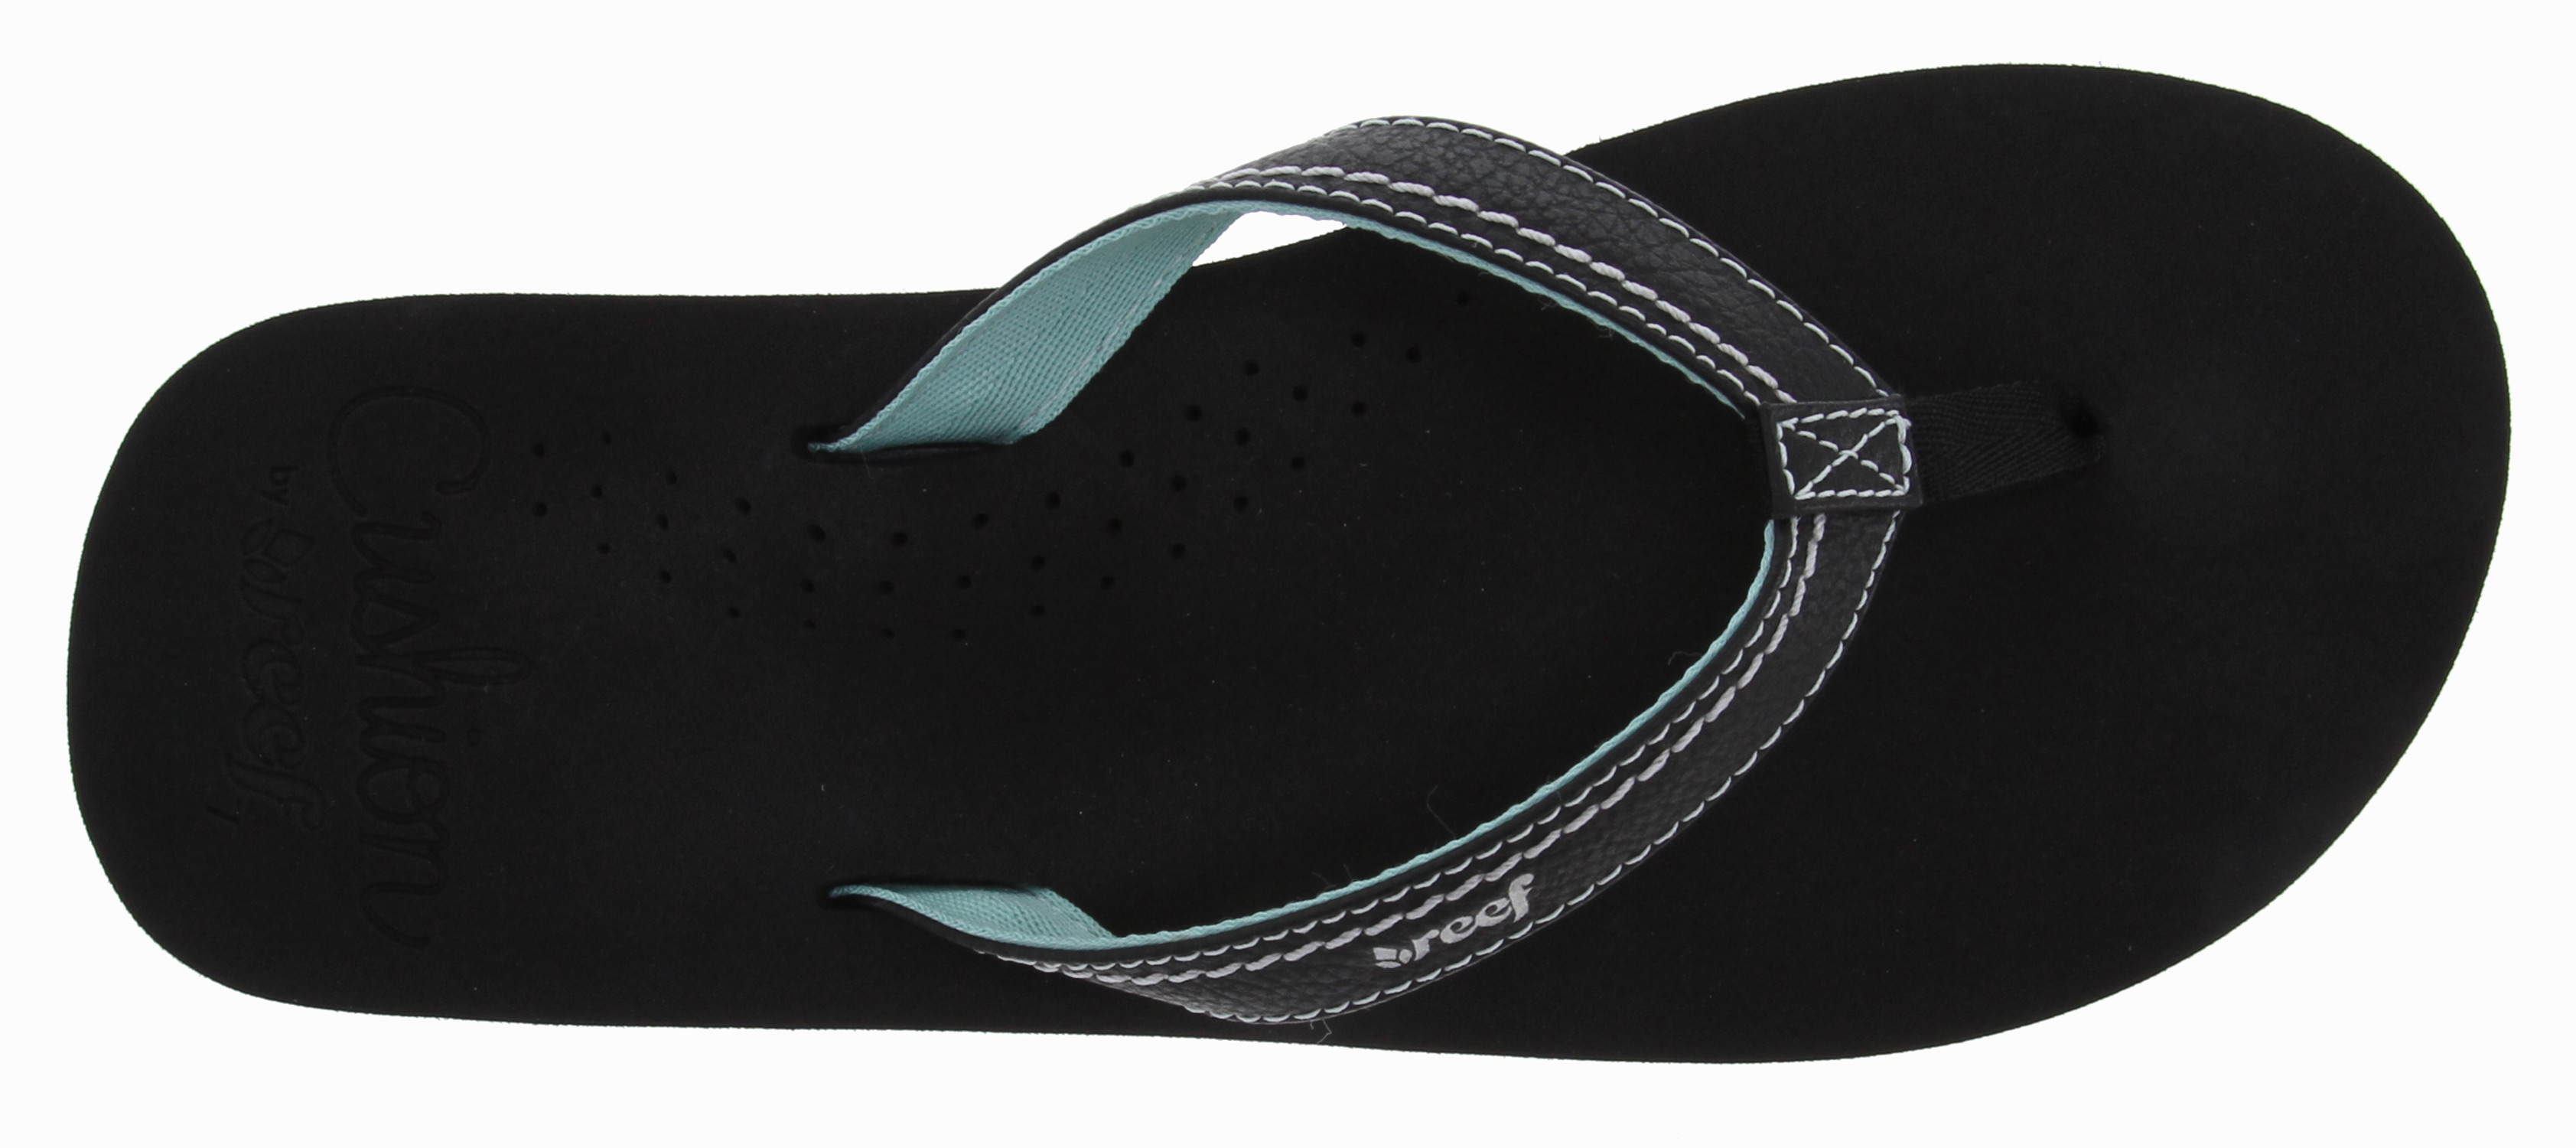 Surf Key Features of the Reef Stitched Cushion Sandals: Synthetic strap with stitched detailing lined with soft polyester webbing Featuring super soft Reef cushion EVA with anatomical arch support Rubber sponge outsole for flexibility - $22.95